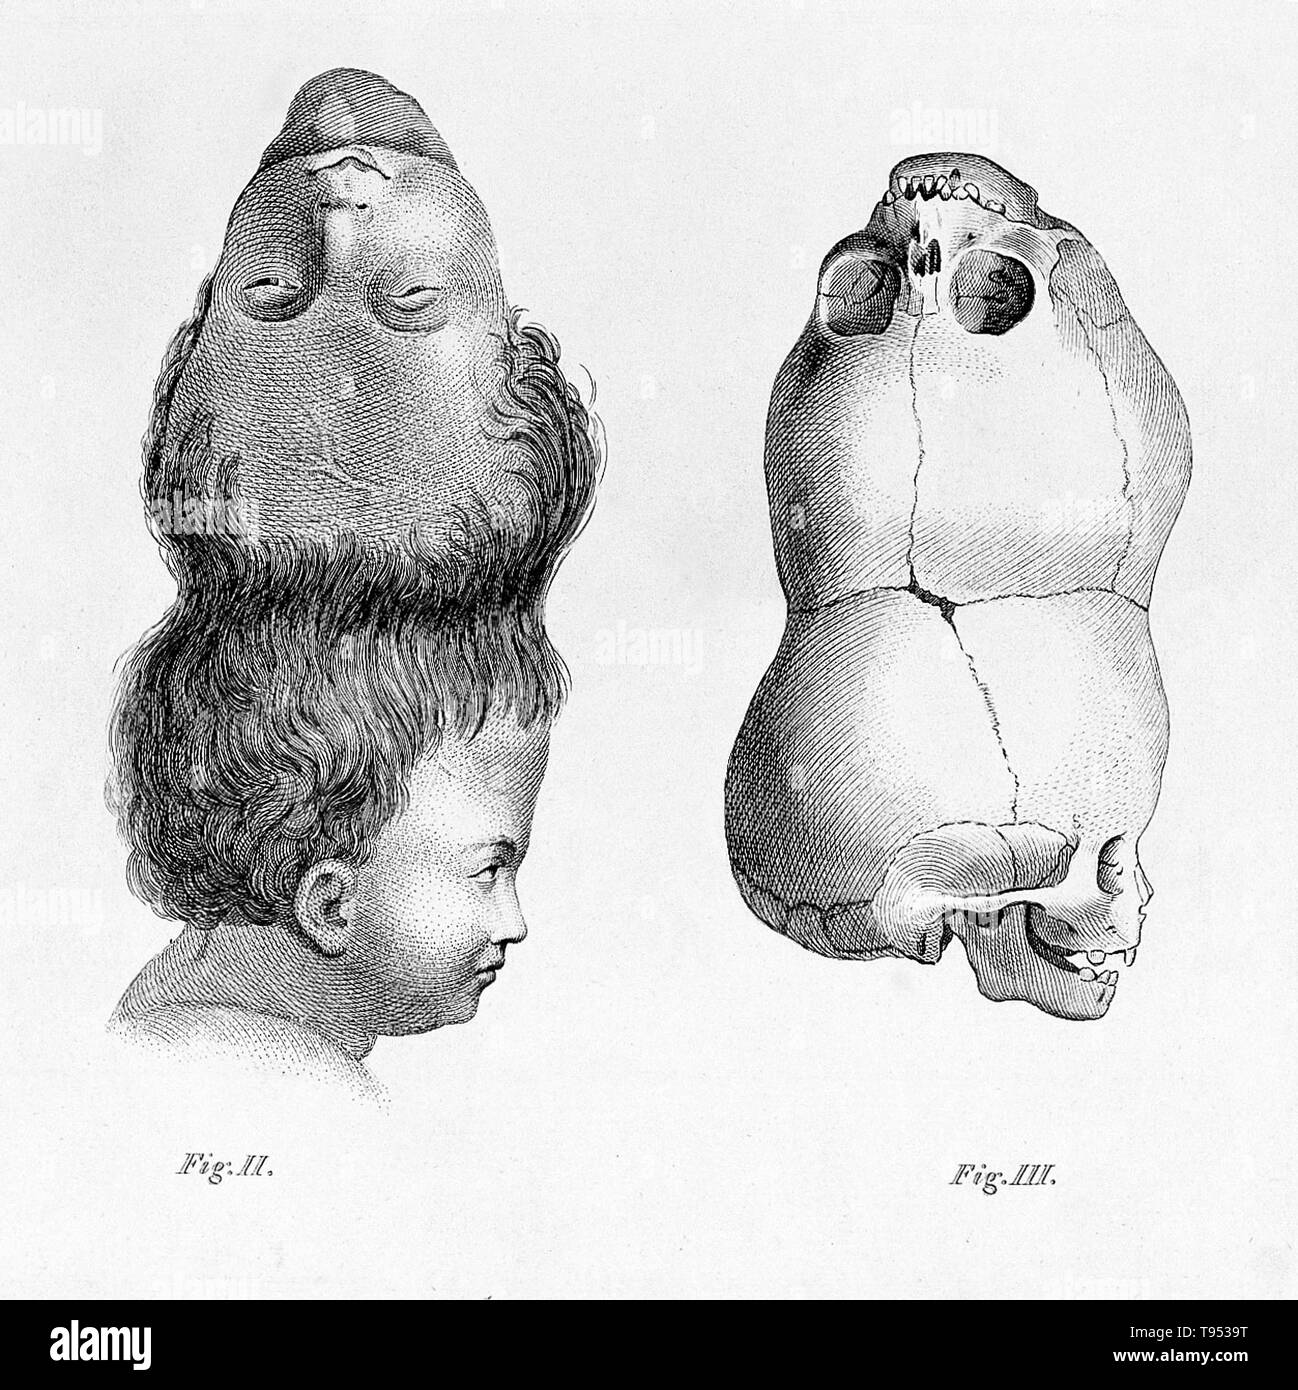 The so-called 'Two-Headed Boy of Bengal' was born in 1783 and died of a cobra bite in 1787. His skull remains in the collection of the Hunterian Museum of the Royal College of Surgeons of London. Craniopagus parasiticus is an extremely rare type of parasitic twinning occurring in about 4 to 6 of 10,000,000 births. In craniopagus parasiticus, a parasitic twin head with an undeveloped body is attached to the head of a developed twin. - Stock Image